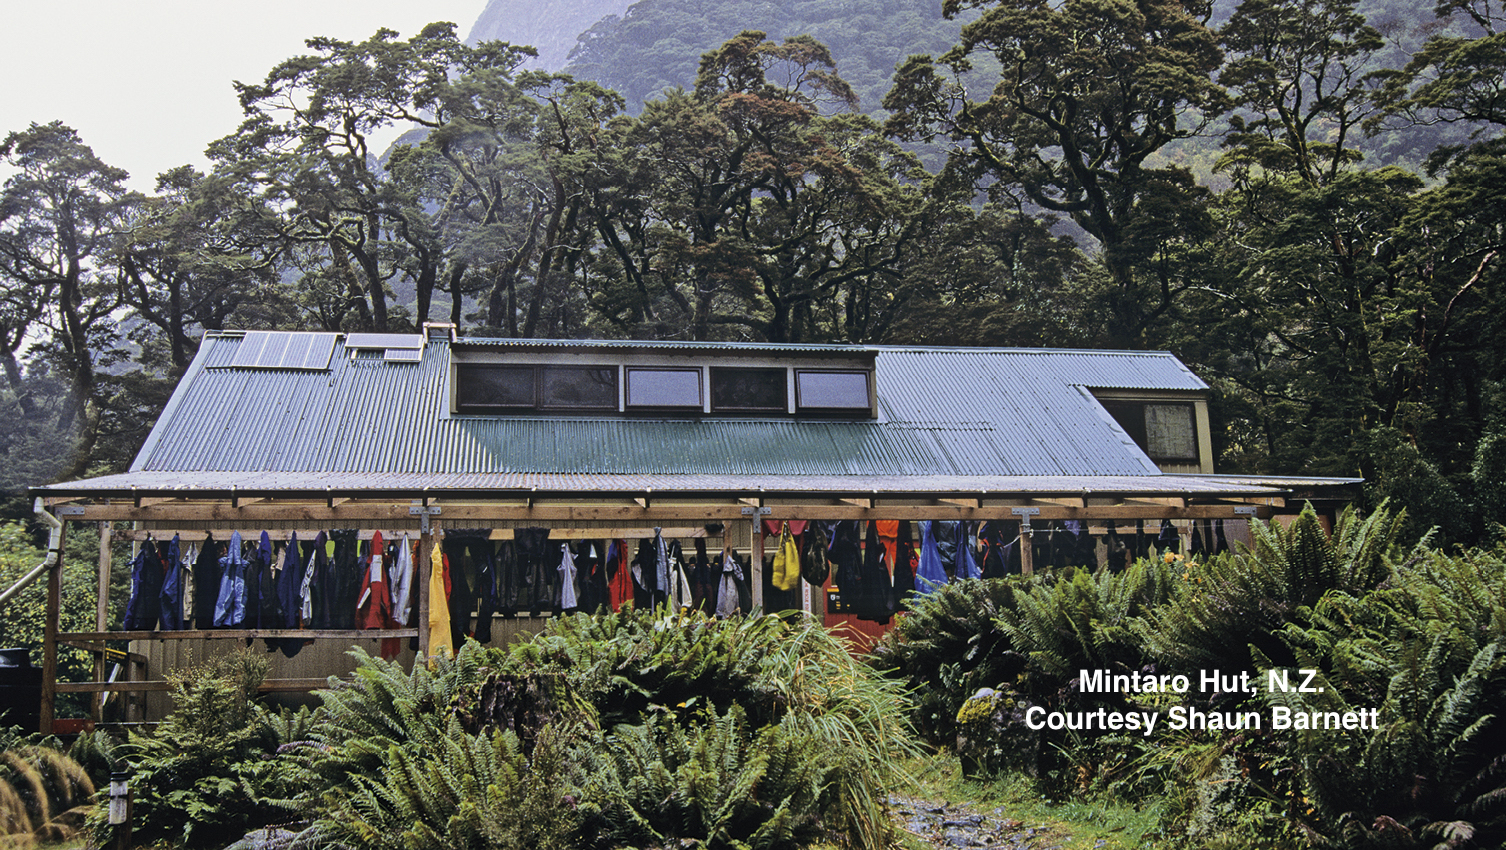 Associated with the 1966-67 Freedom Walks on Milford Track